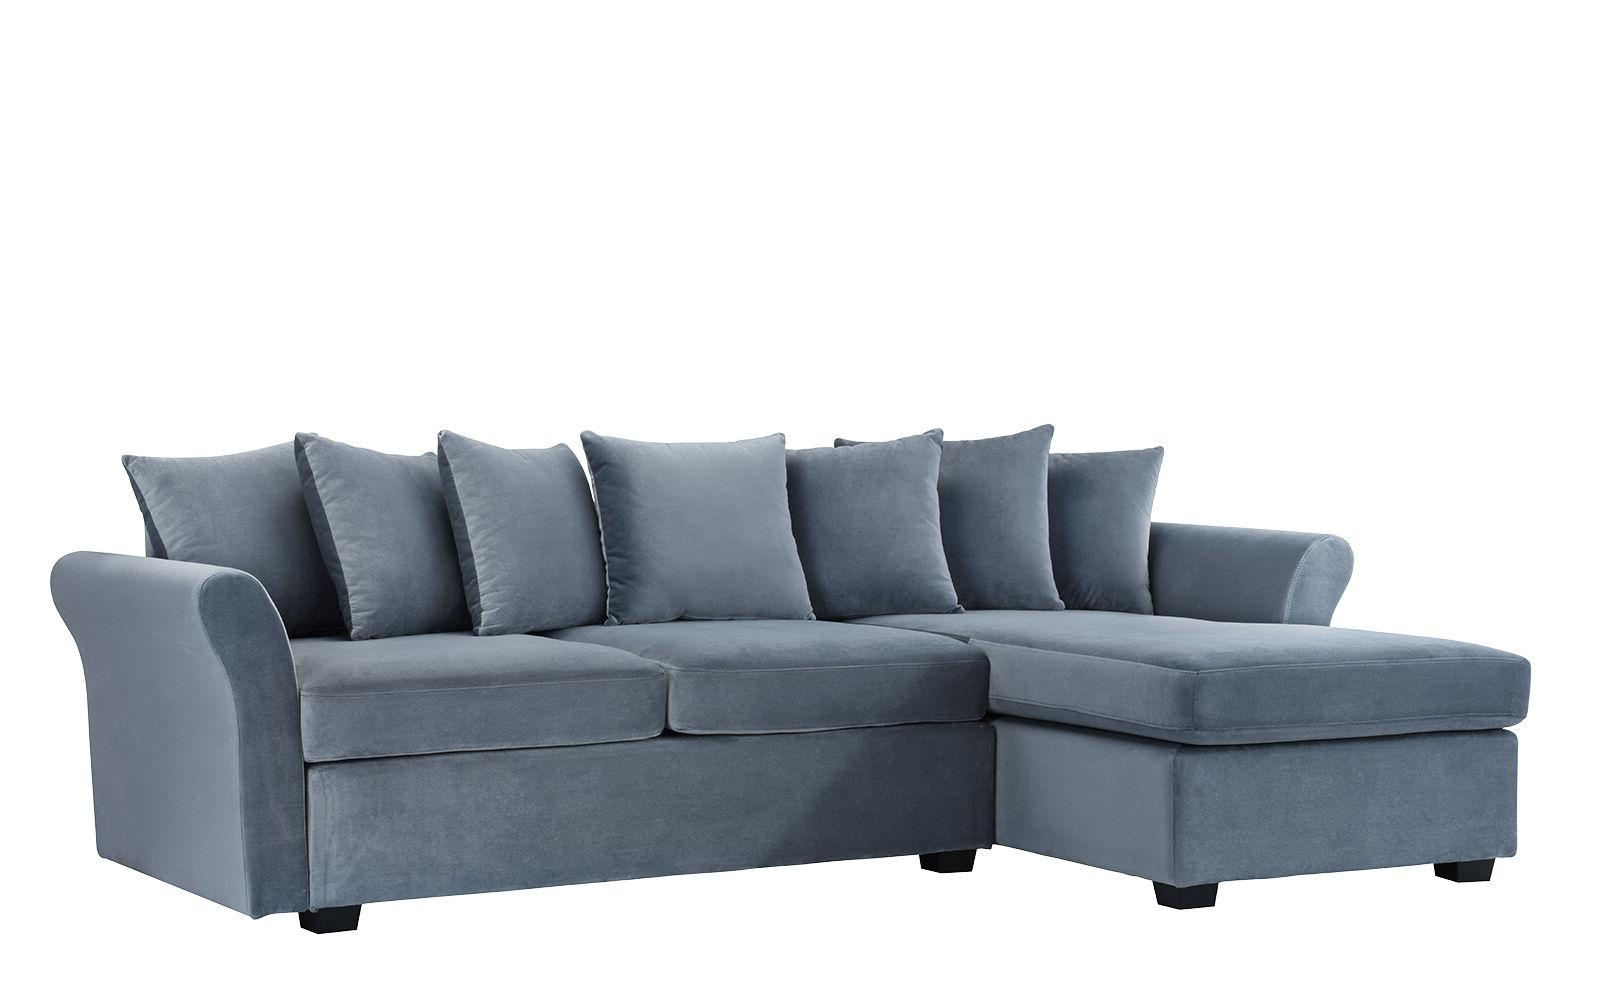 Velvet Sofa L-Shape Sectional Classic Couch with Chaise Lounge Grey